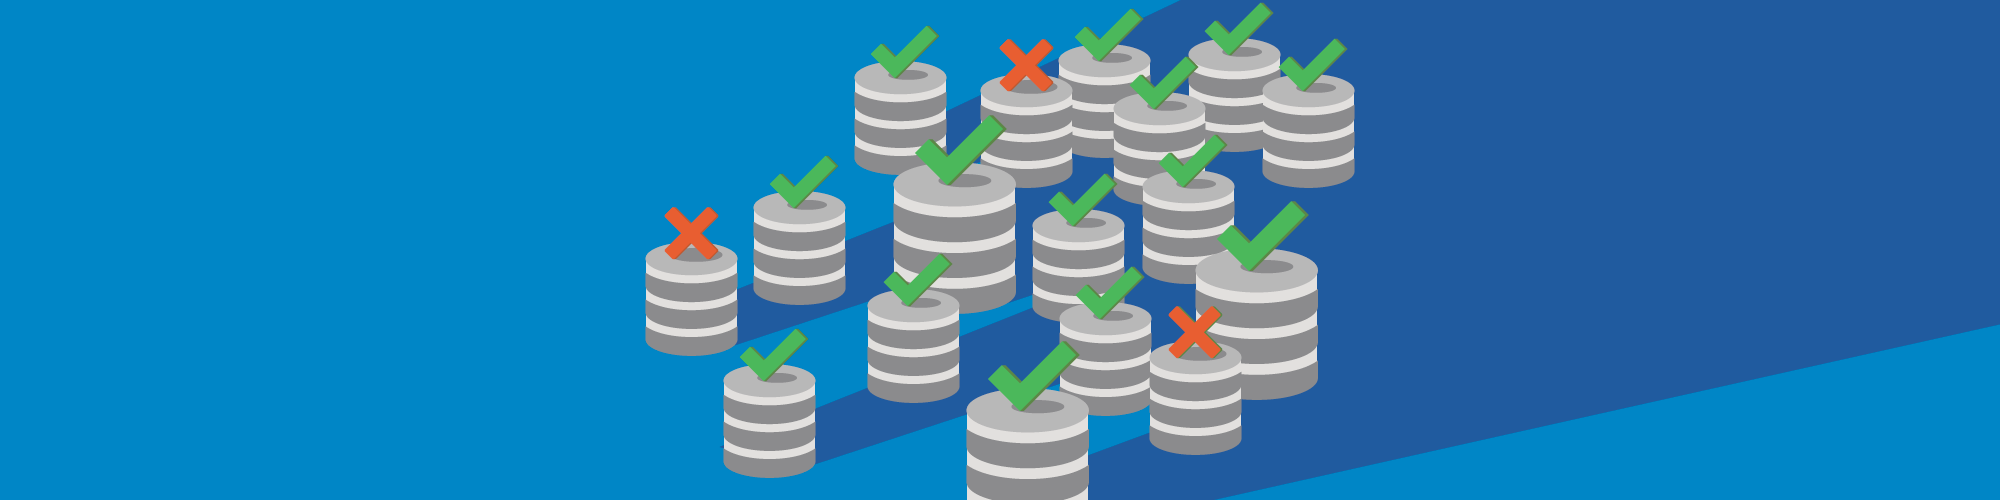 Auditing NoSQL Databases (MongoDB) with Nessus v6